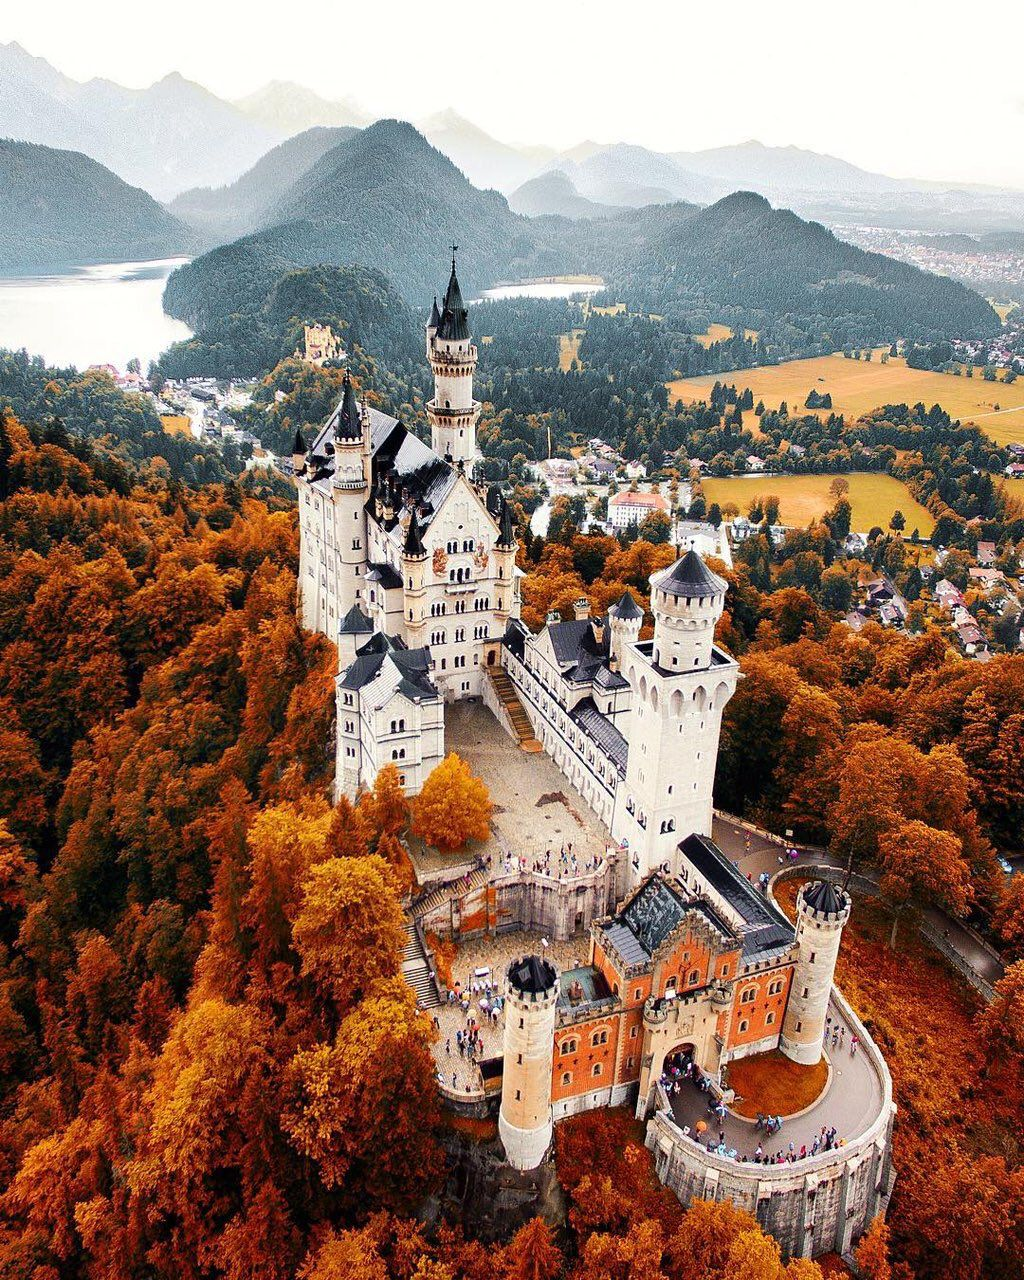 "Earth Daily on Twitter: ""Neuschwanstein Castle in Germany https://t.co/KHBTcMV3Hh"""